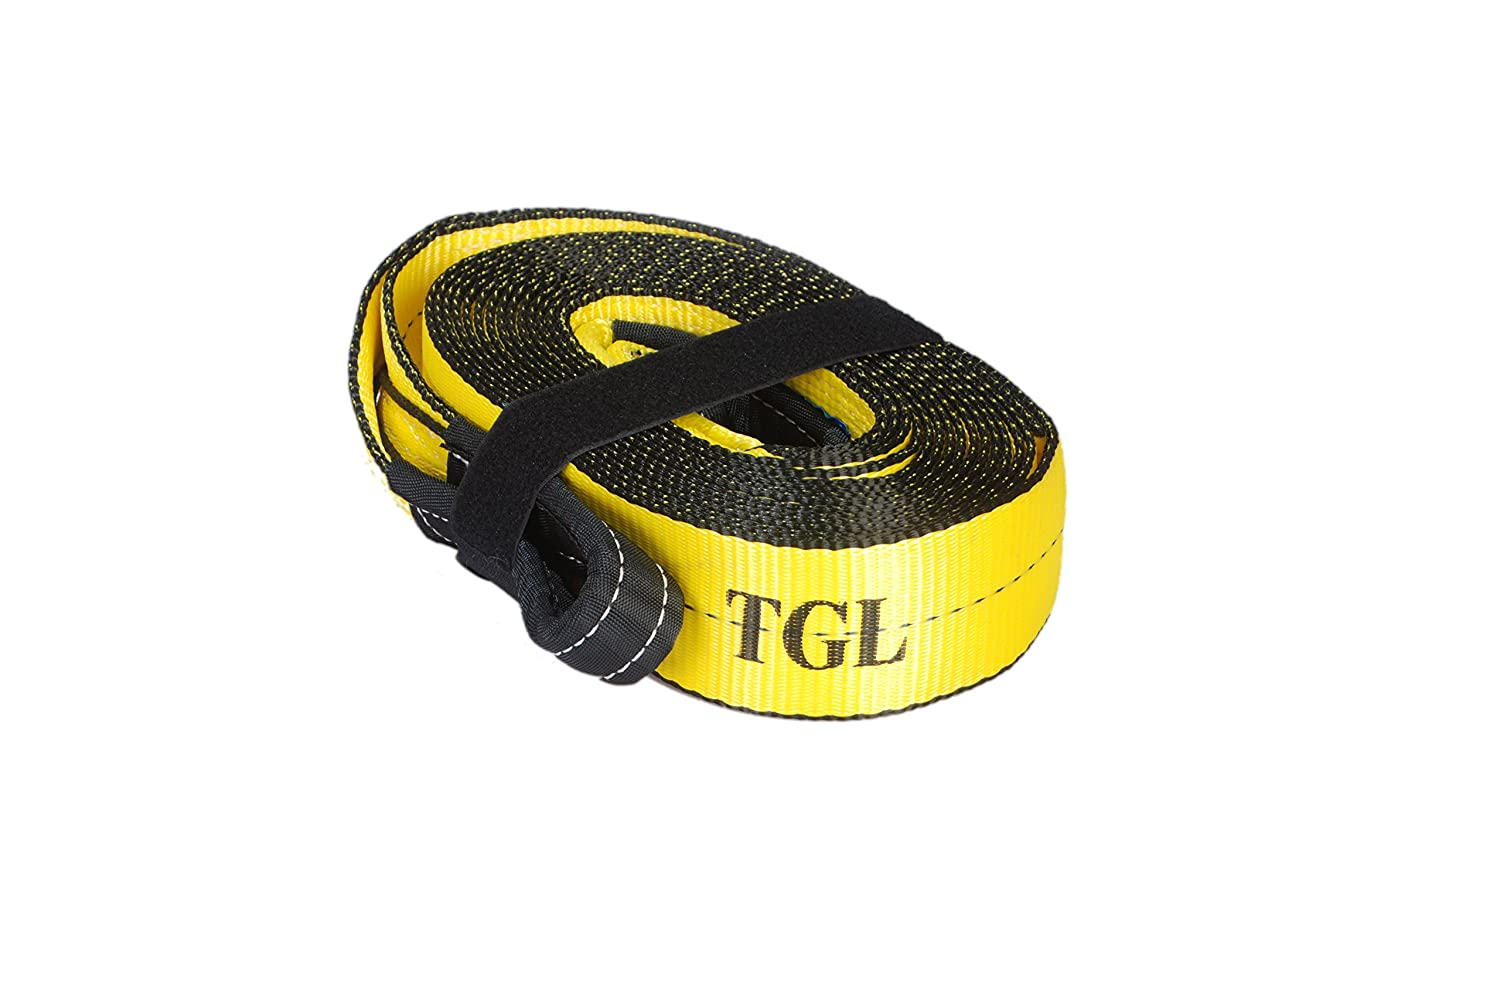 3', 30' tow strap, recovery strap with 30,000 pound capacity and reusable storage strap 30' tow strap TGL 3-30TS